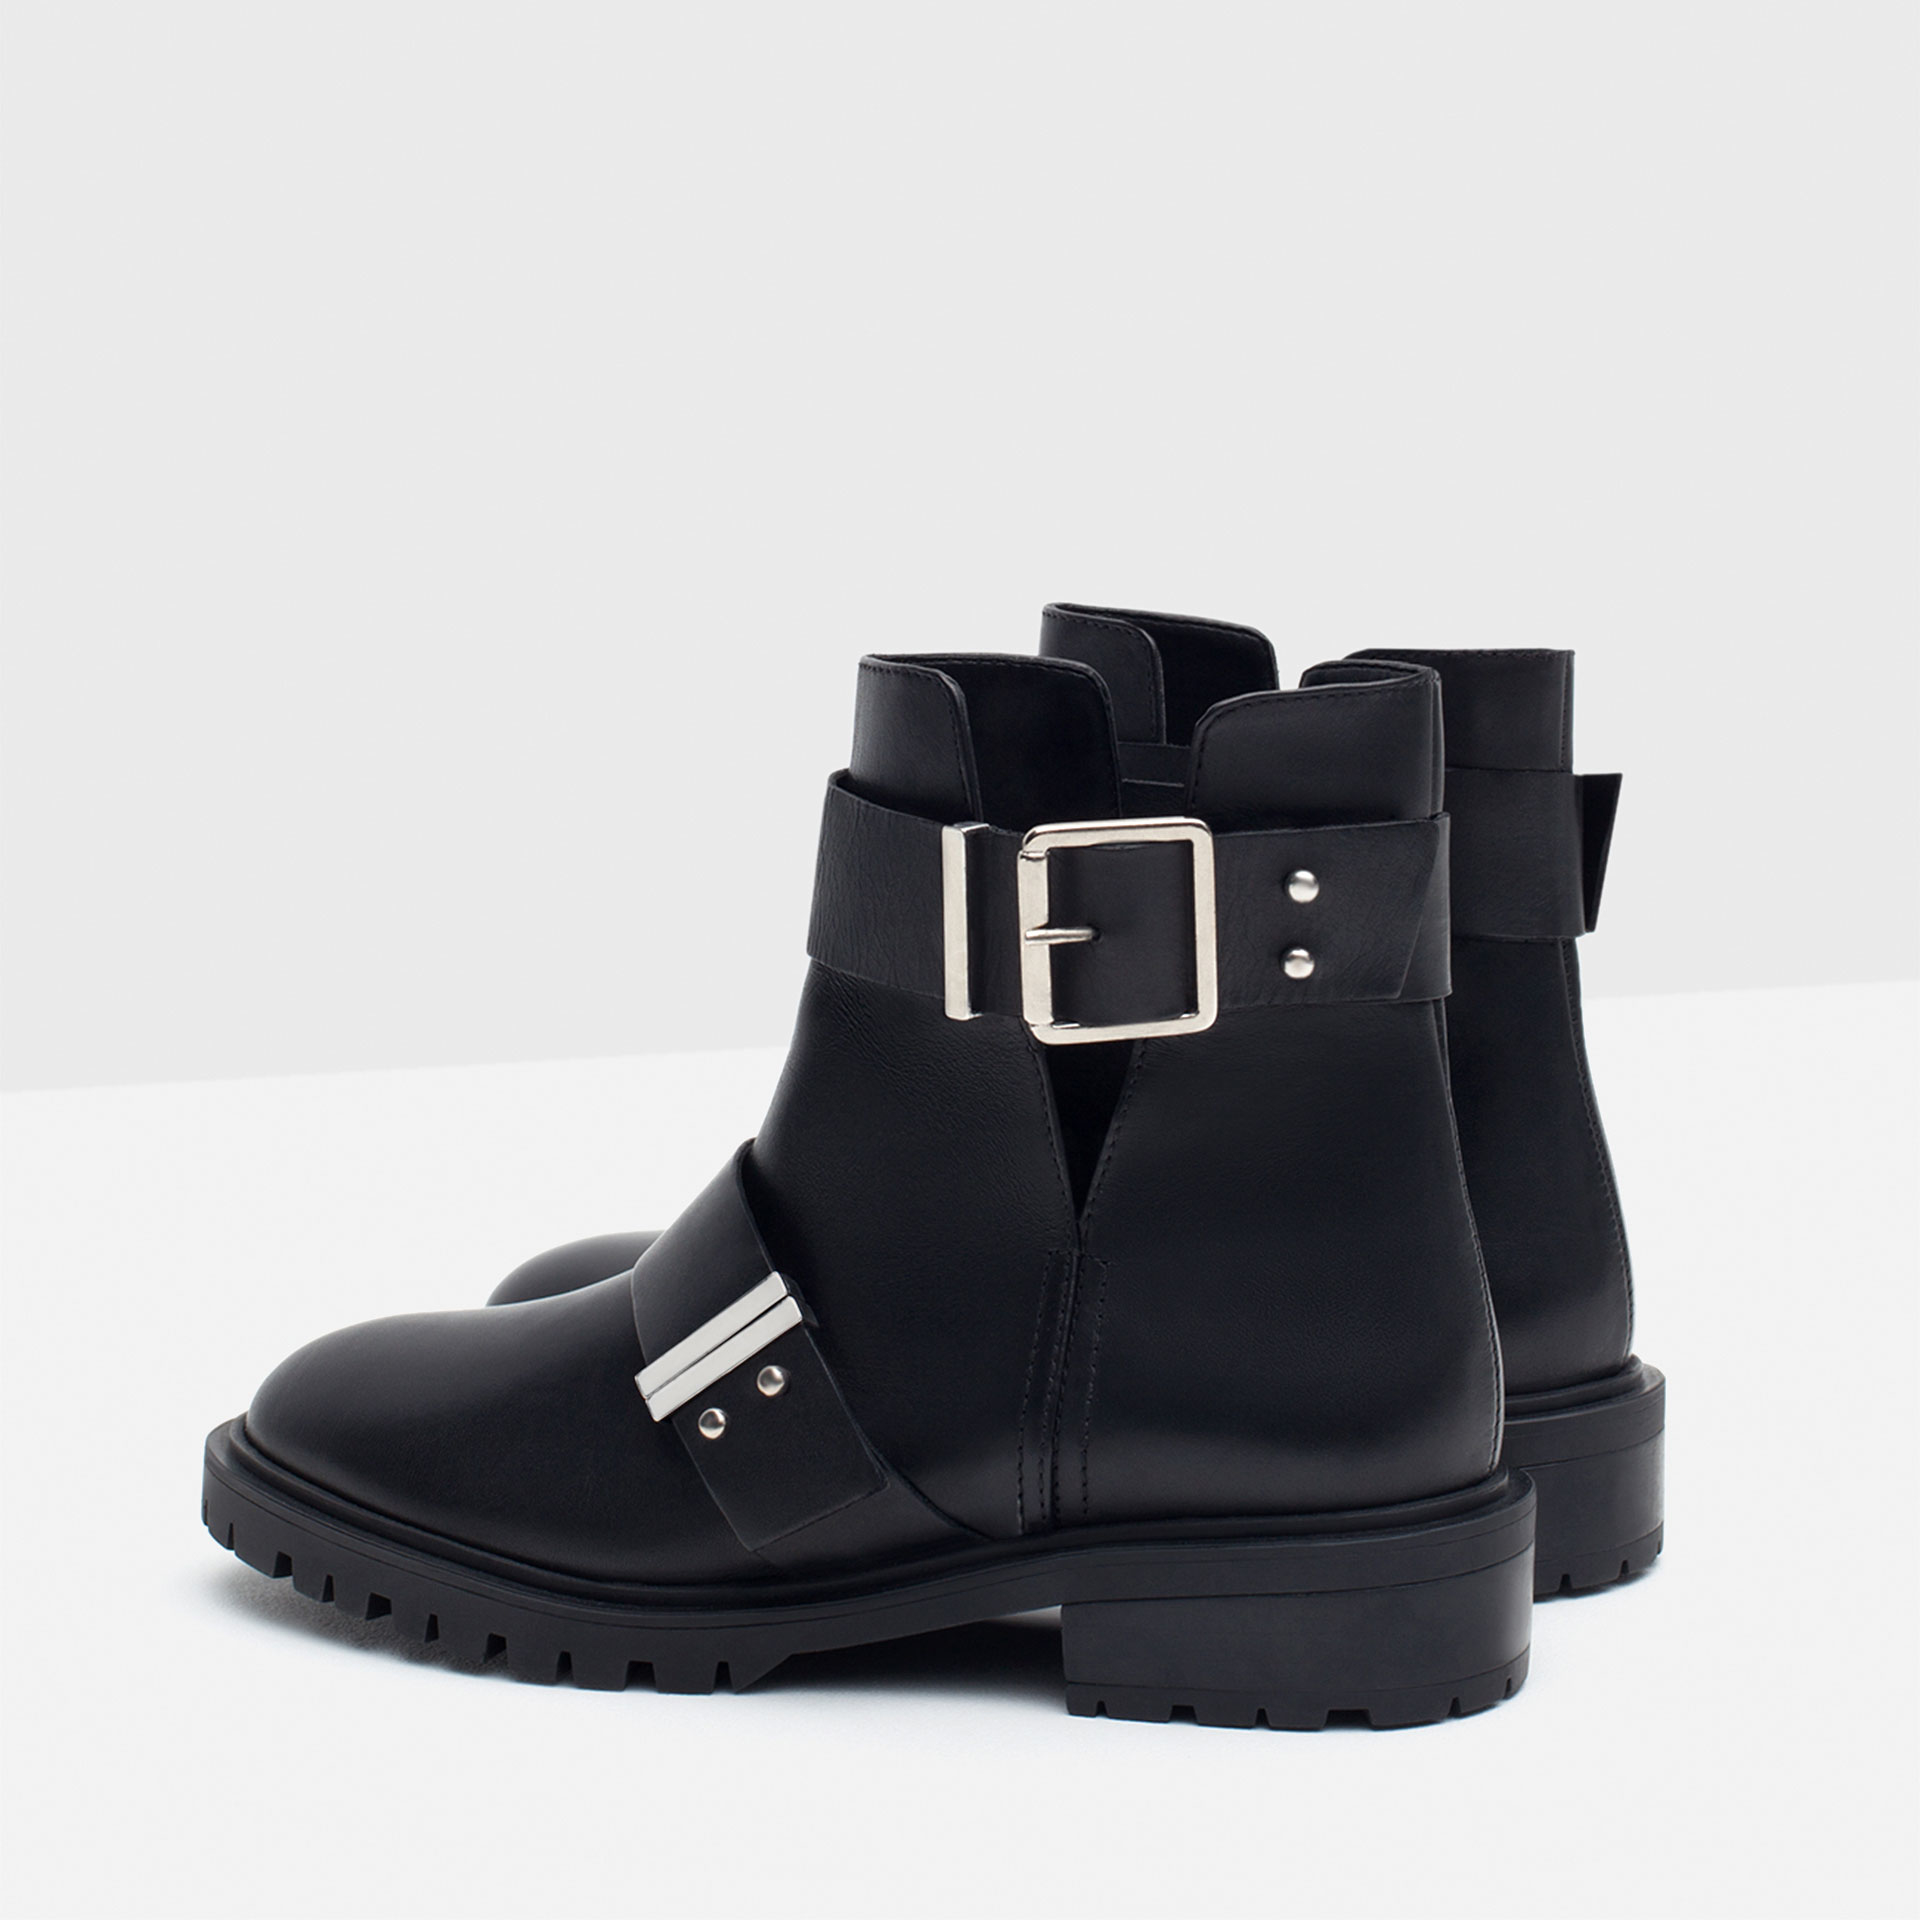 Zara Leather Biker Boots With Buckles in Black | Lyst